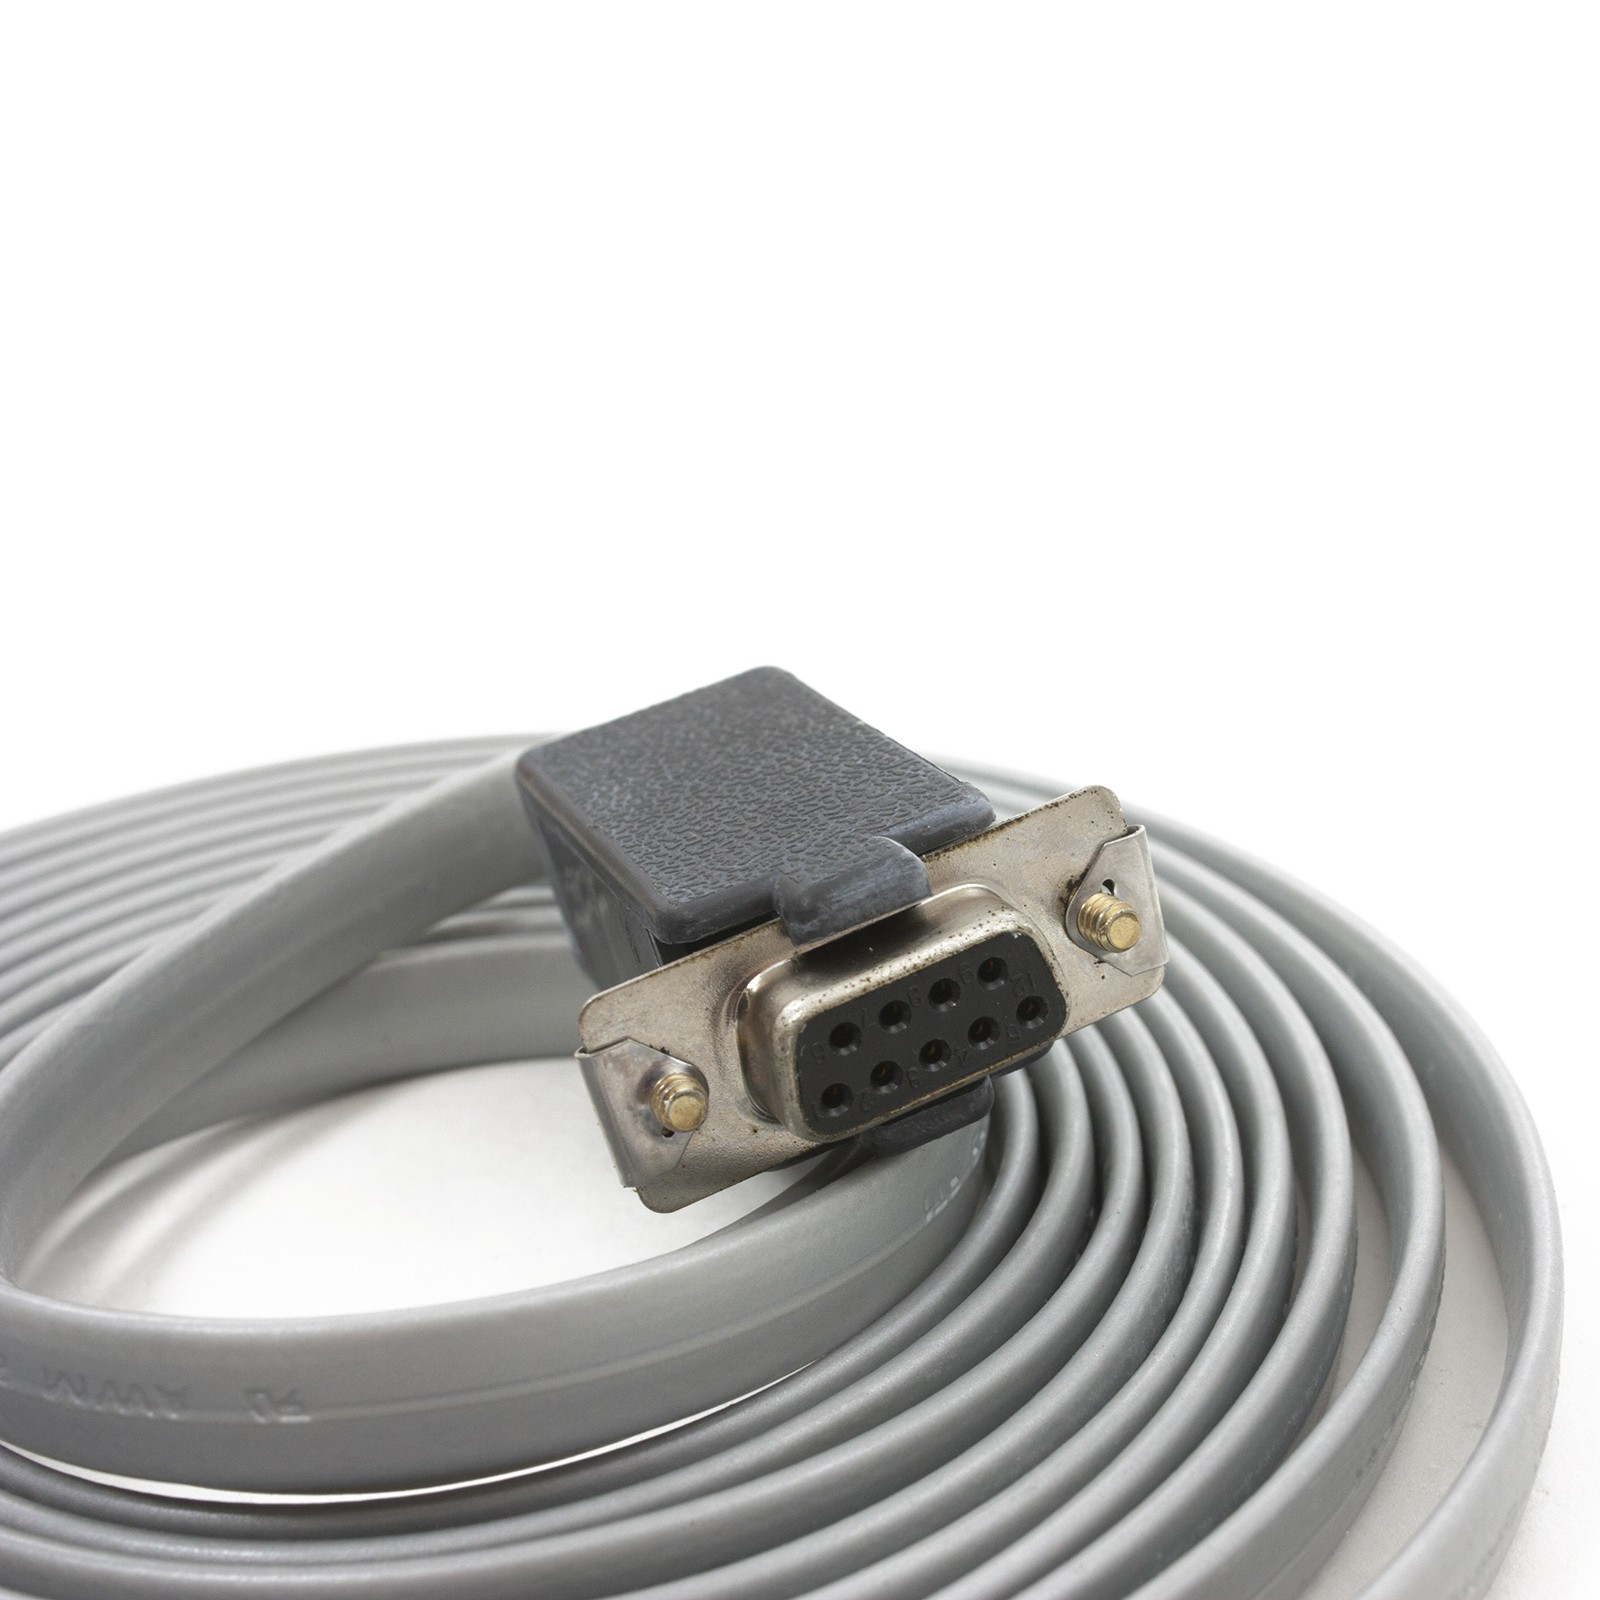 Linear A2c Db9 Serial Port Cable Acp00415 Linear Pro